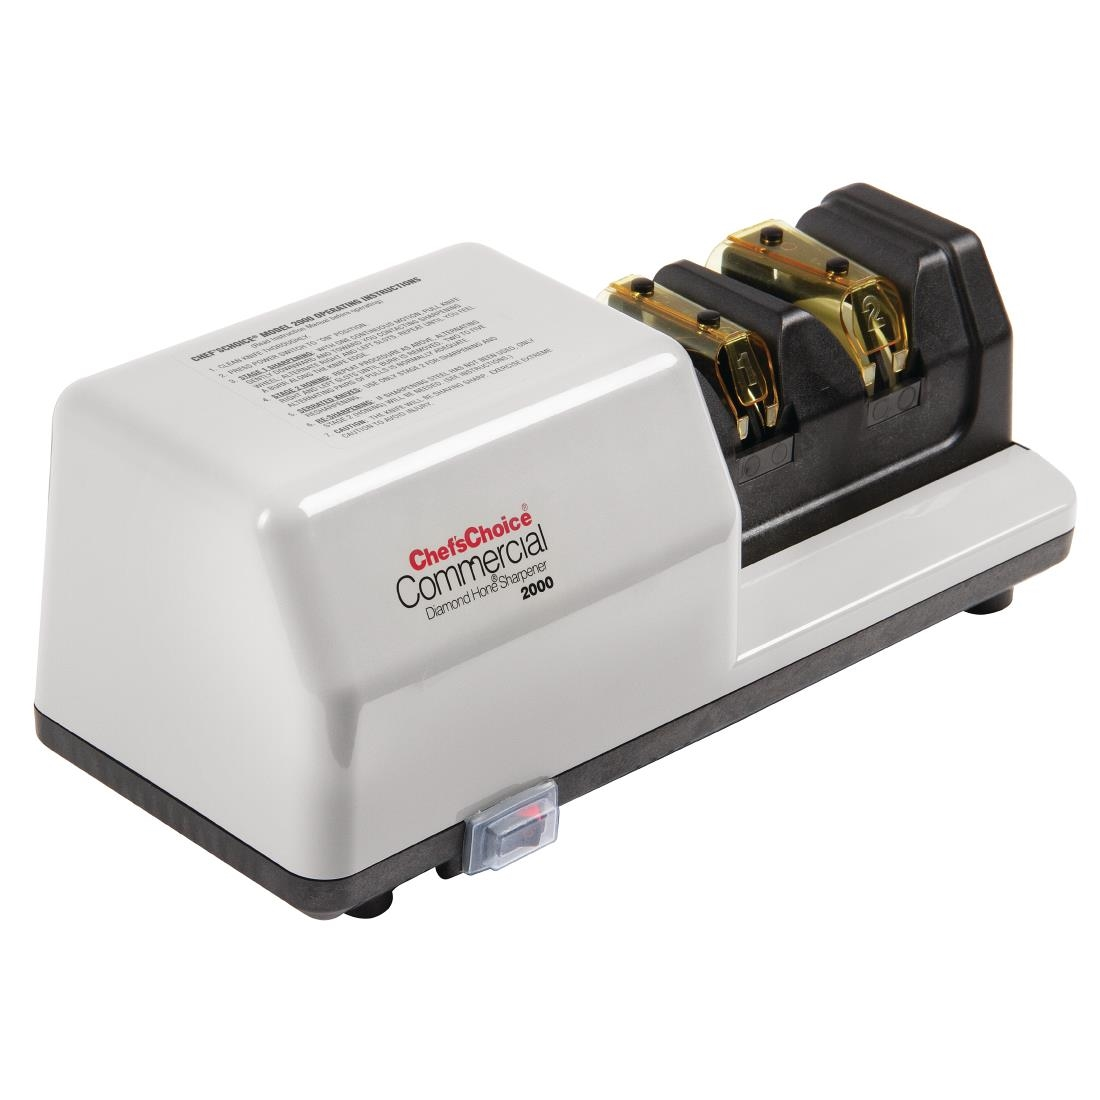 Image of Chefs Choice Commercial 2000 Knife Sharpener